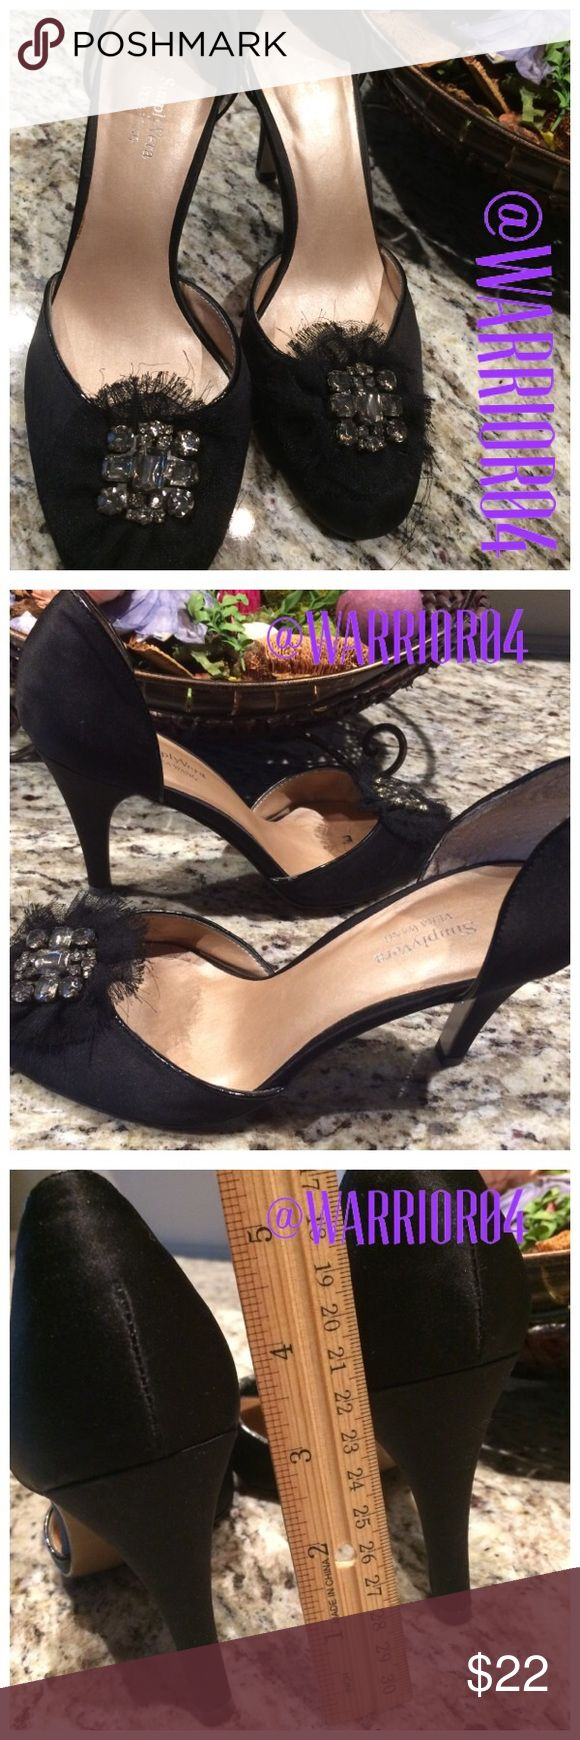 Simply Vera Wang Black Diamond Bow Accented Heels Simply Vera Wang Black Diamond Bow Accented Heels Size 6.5 Simply Vera Vera Wang Shoes Heels